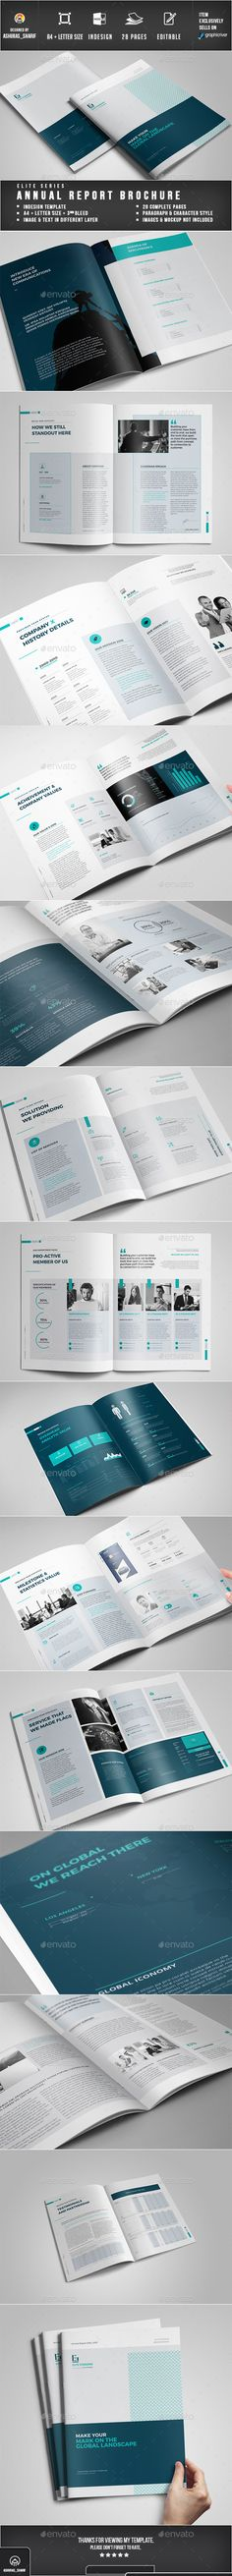 Landscape Brand Book Brochure Template u2026 Pinteresu2026 - business annual report template